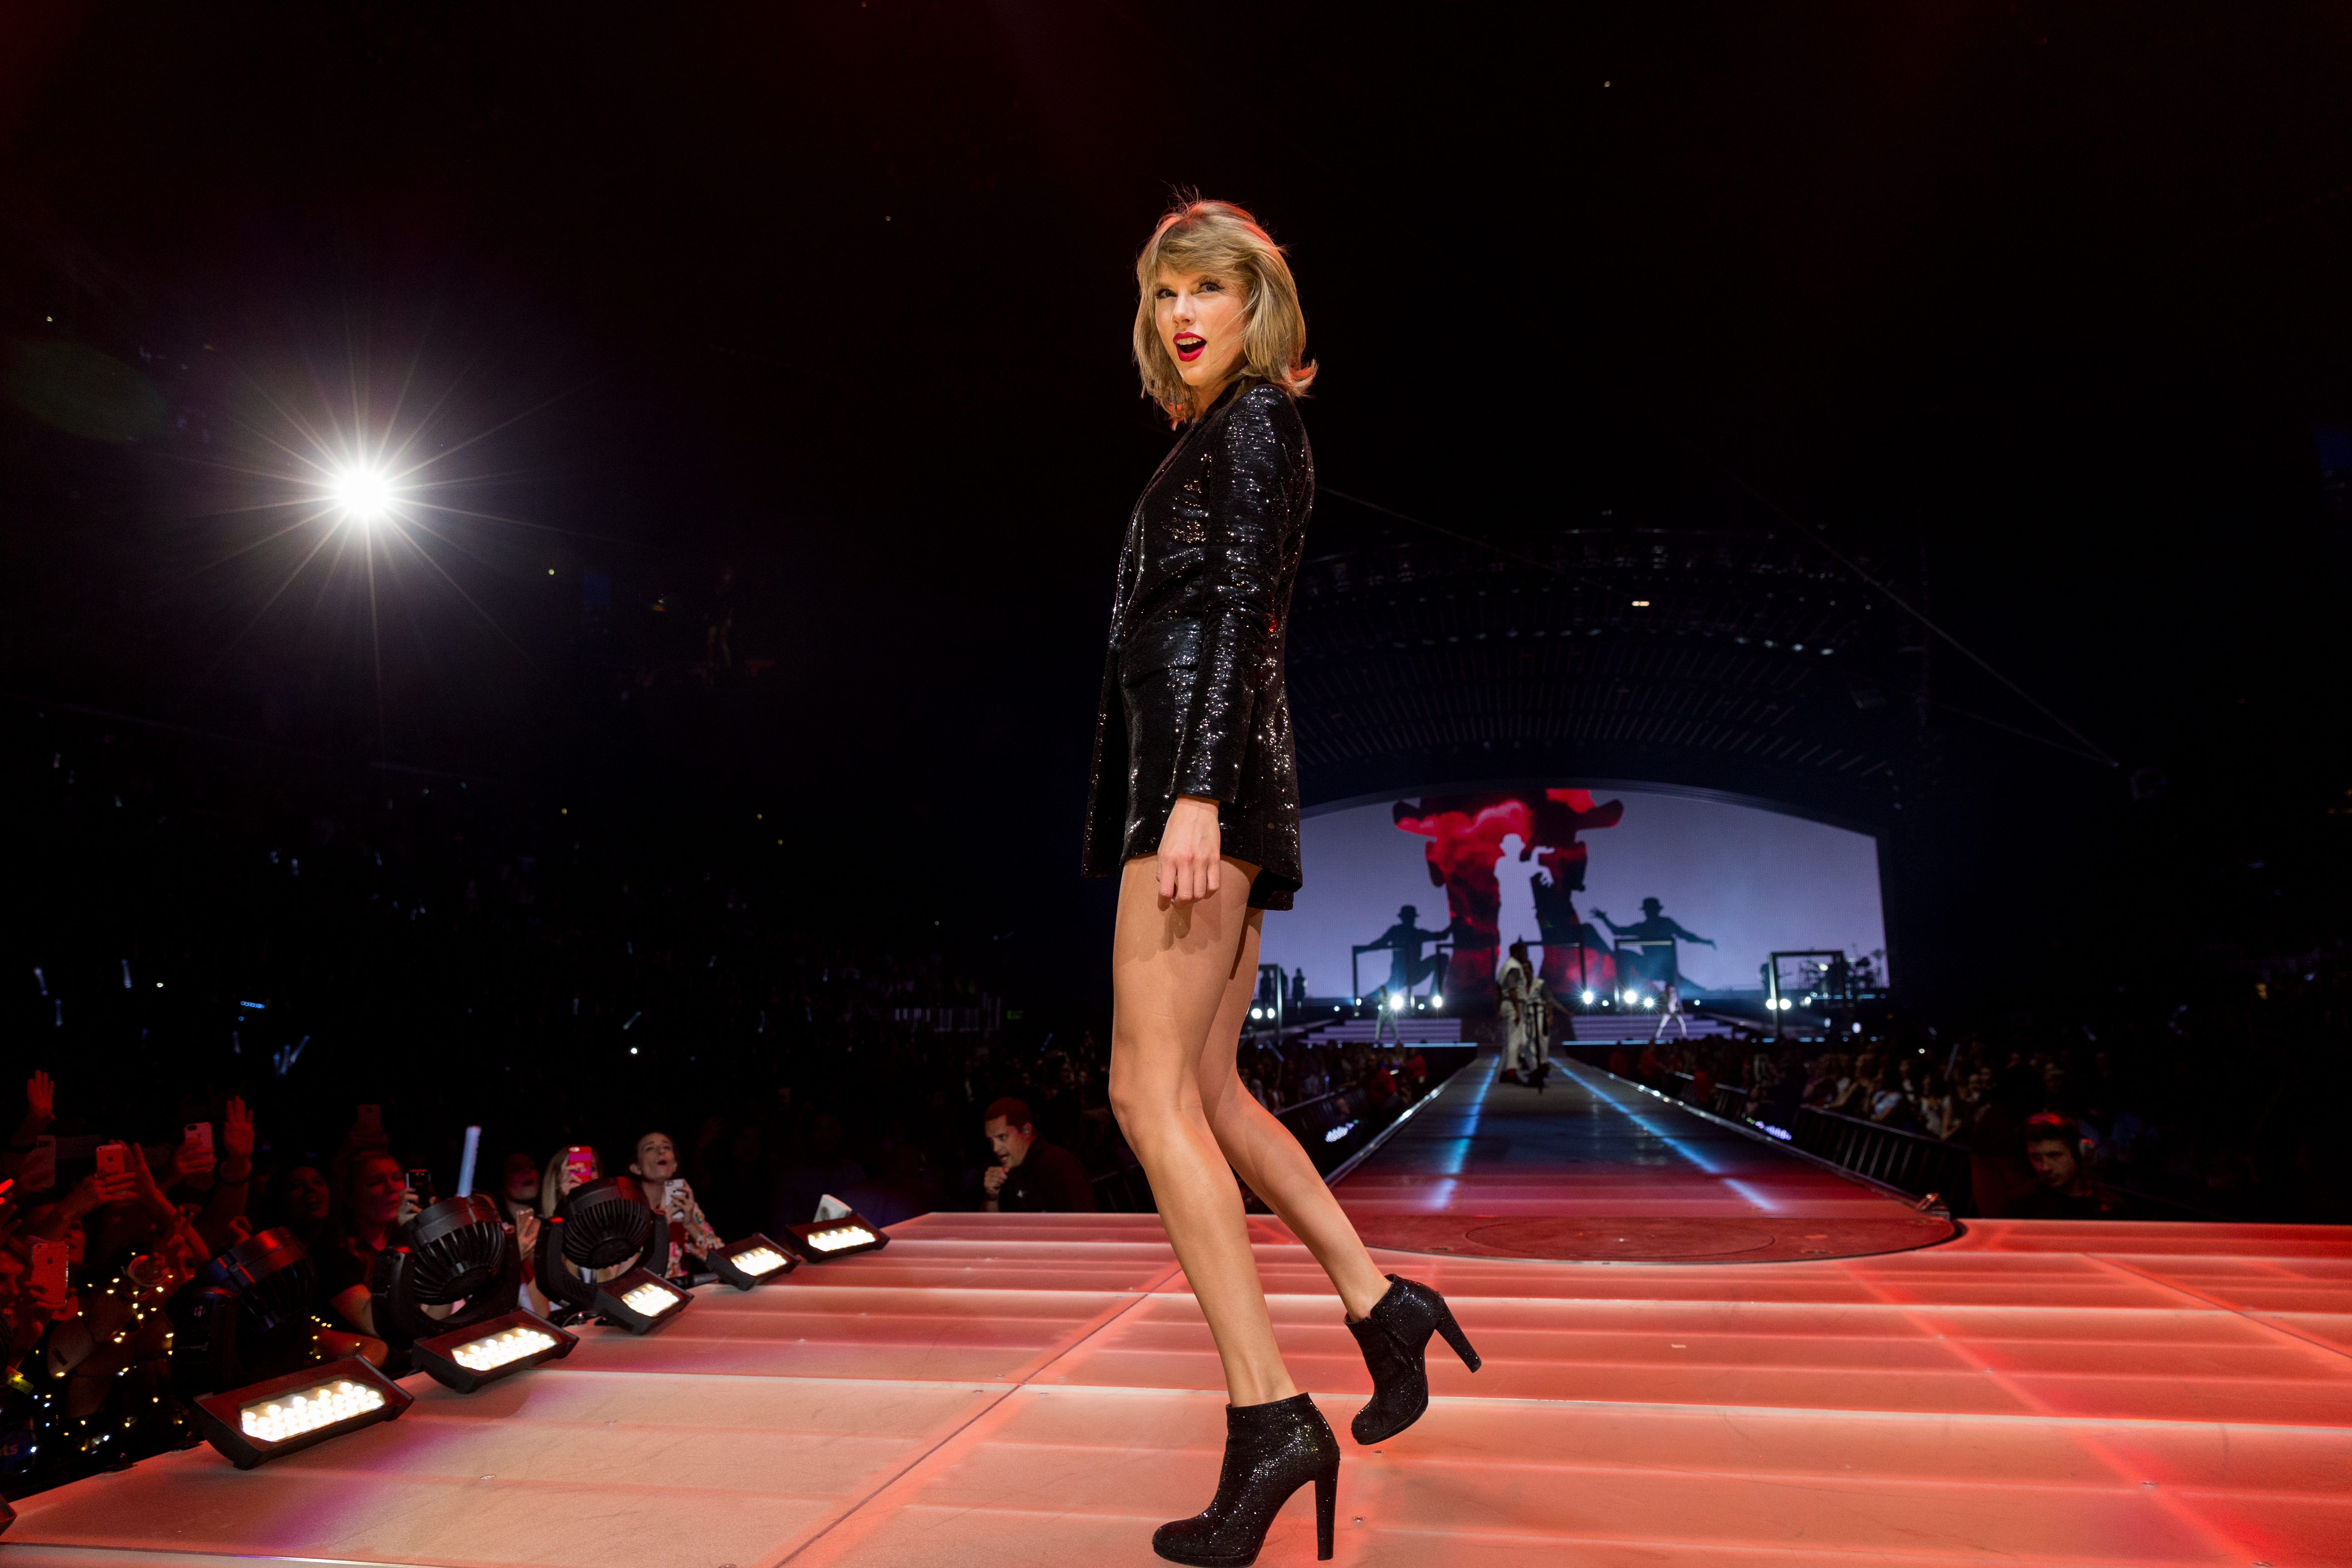 There are so many Taylor Swift pictures in our media library...